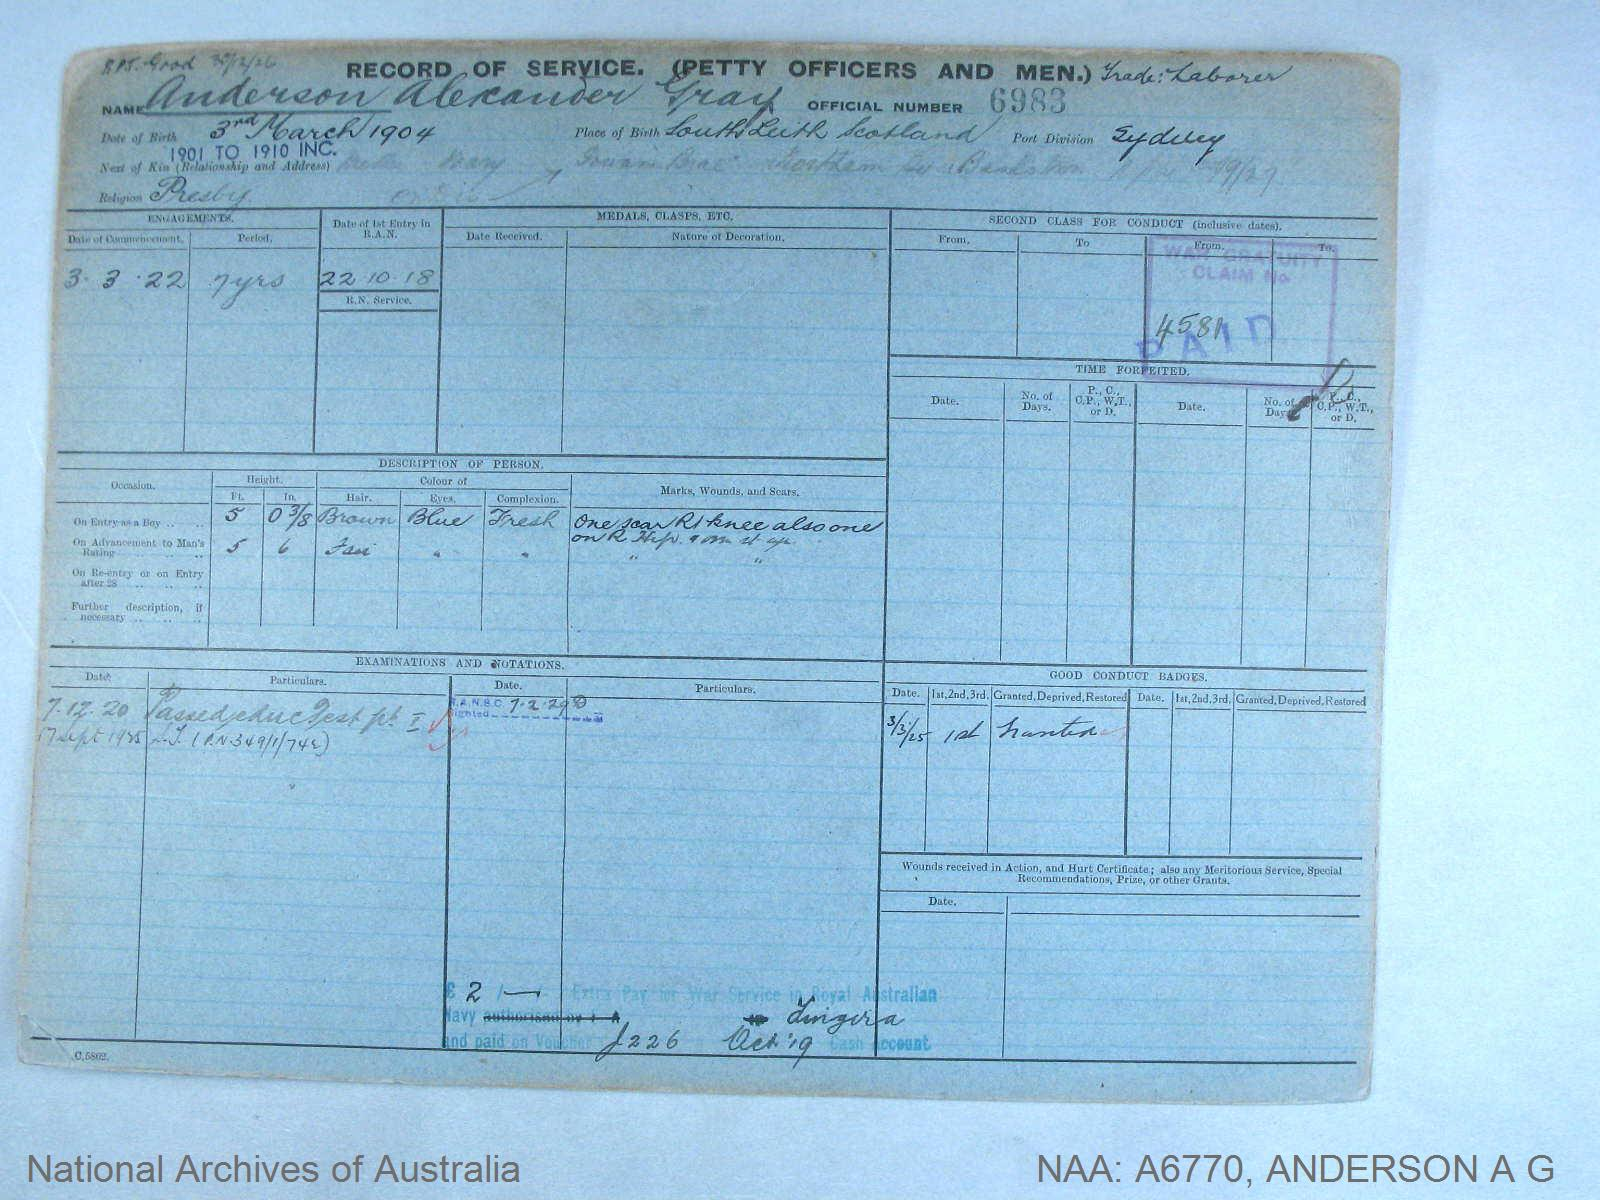 ANDERSON ALEXANDER GRAY : Service Number - 6983 : Date of birth - 03 Mar 1904 : Place of birth - SOUTH LEITH SCOTLAND : Place of enlistment - SYDNEY : Next of Kin - ANDERSON MARY